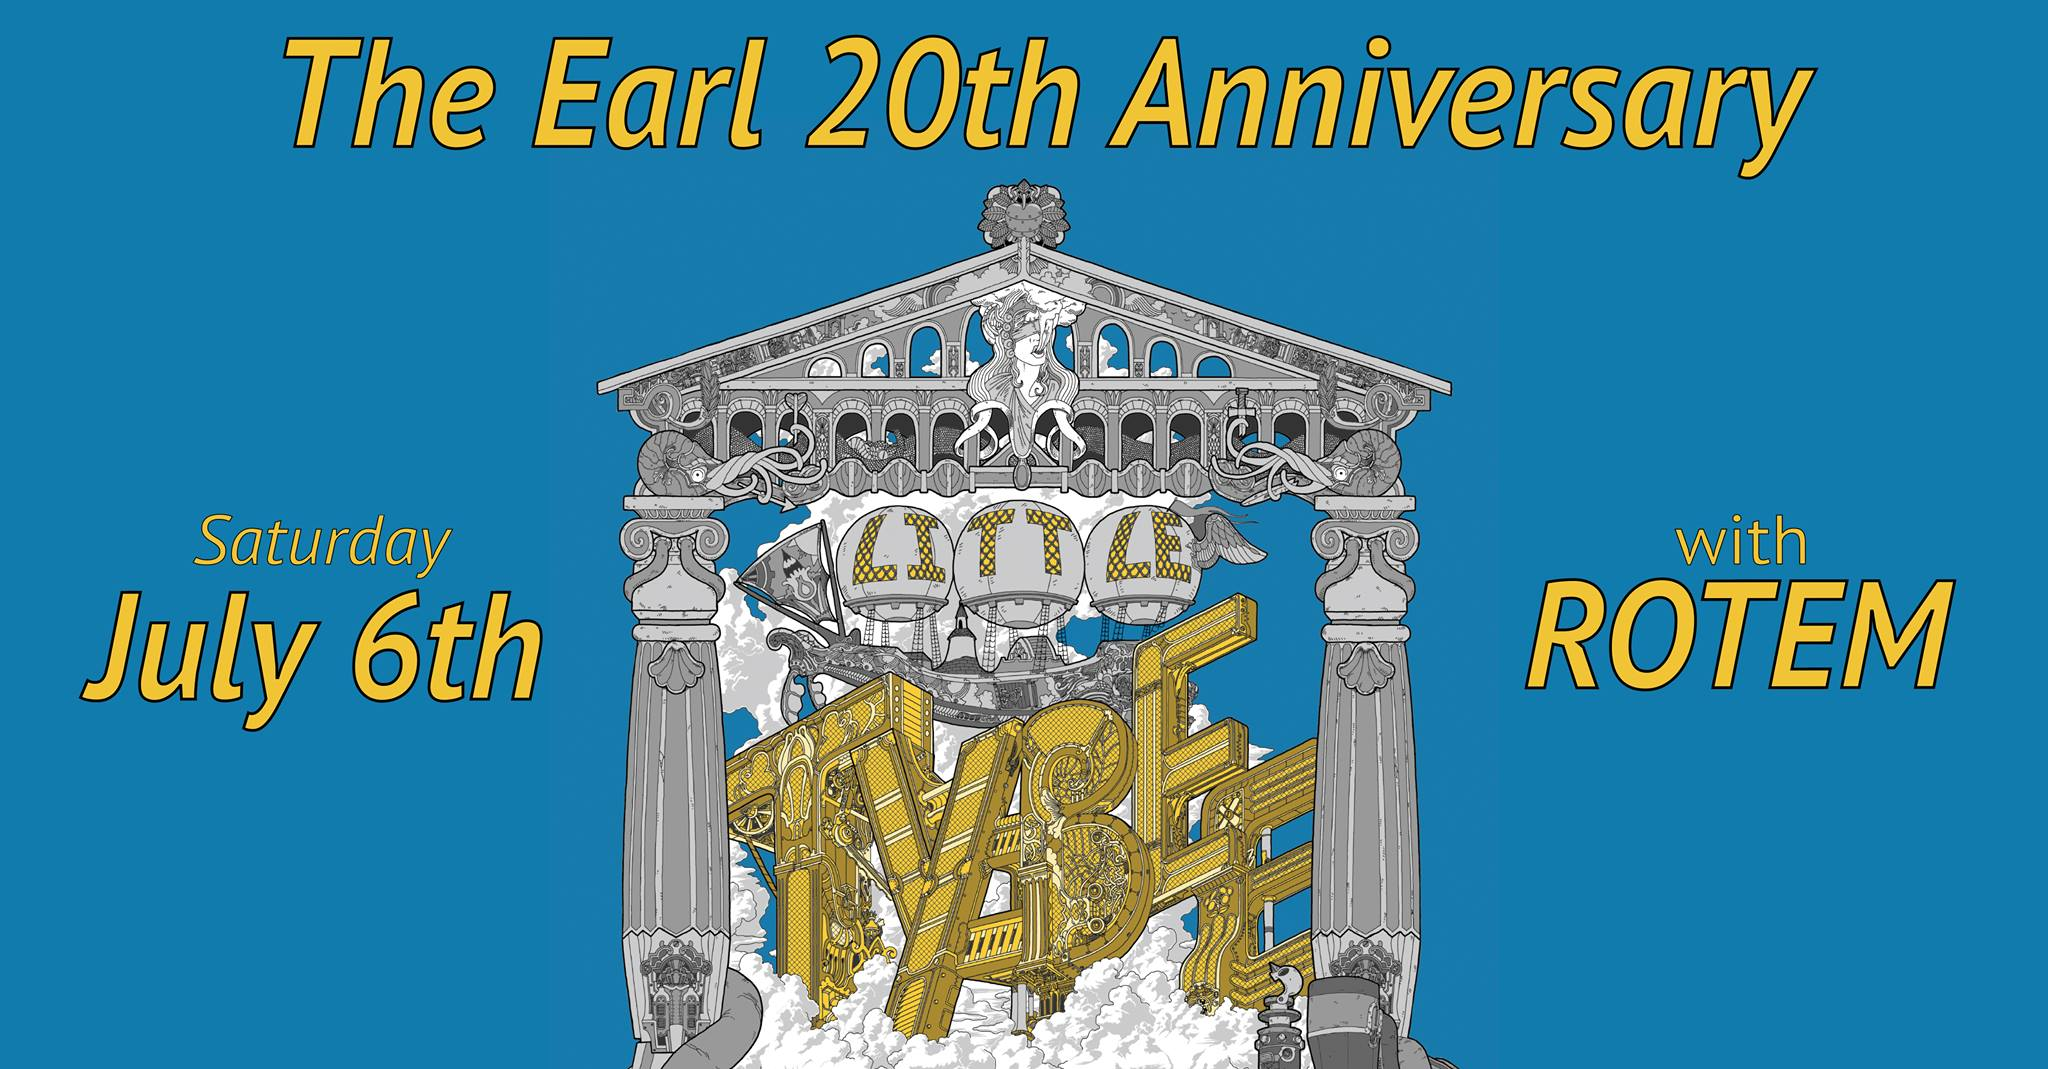 The Earl celebrates 20 years with Little Tybee this Saturday